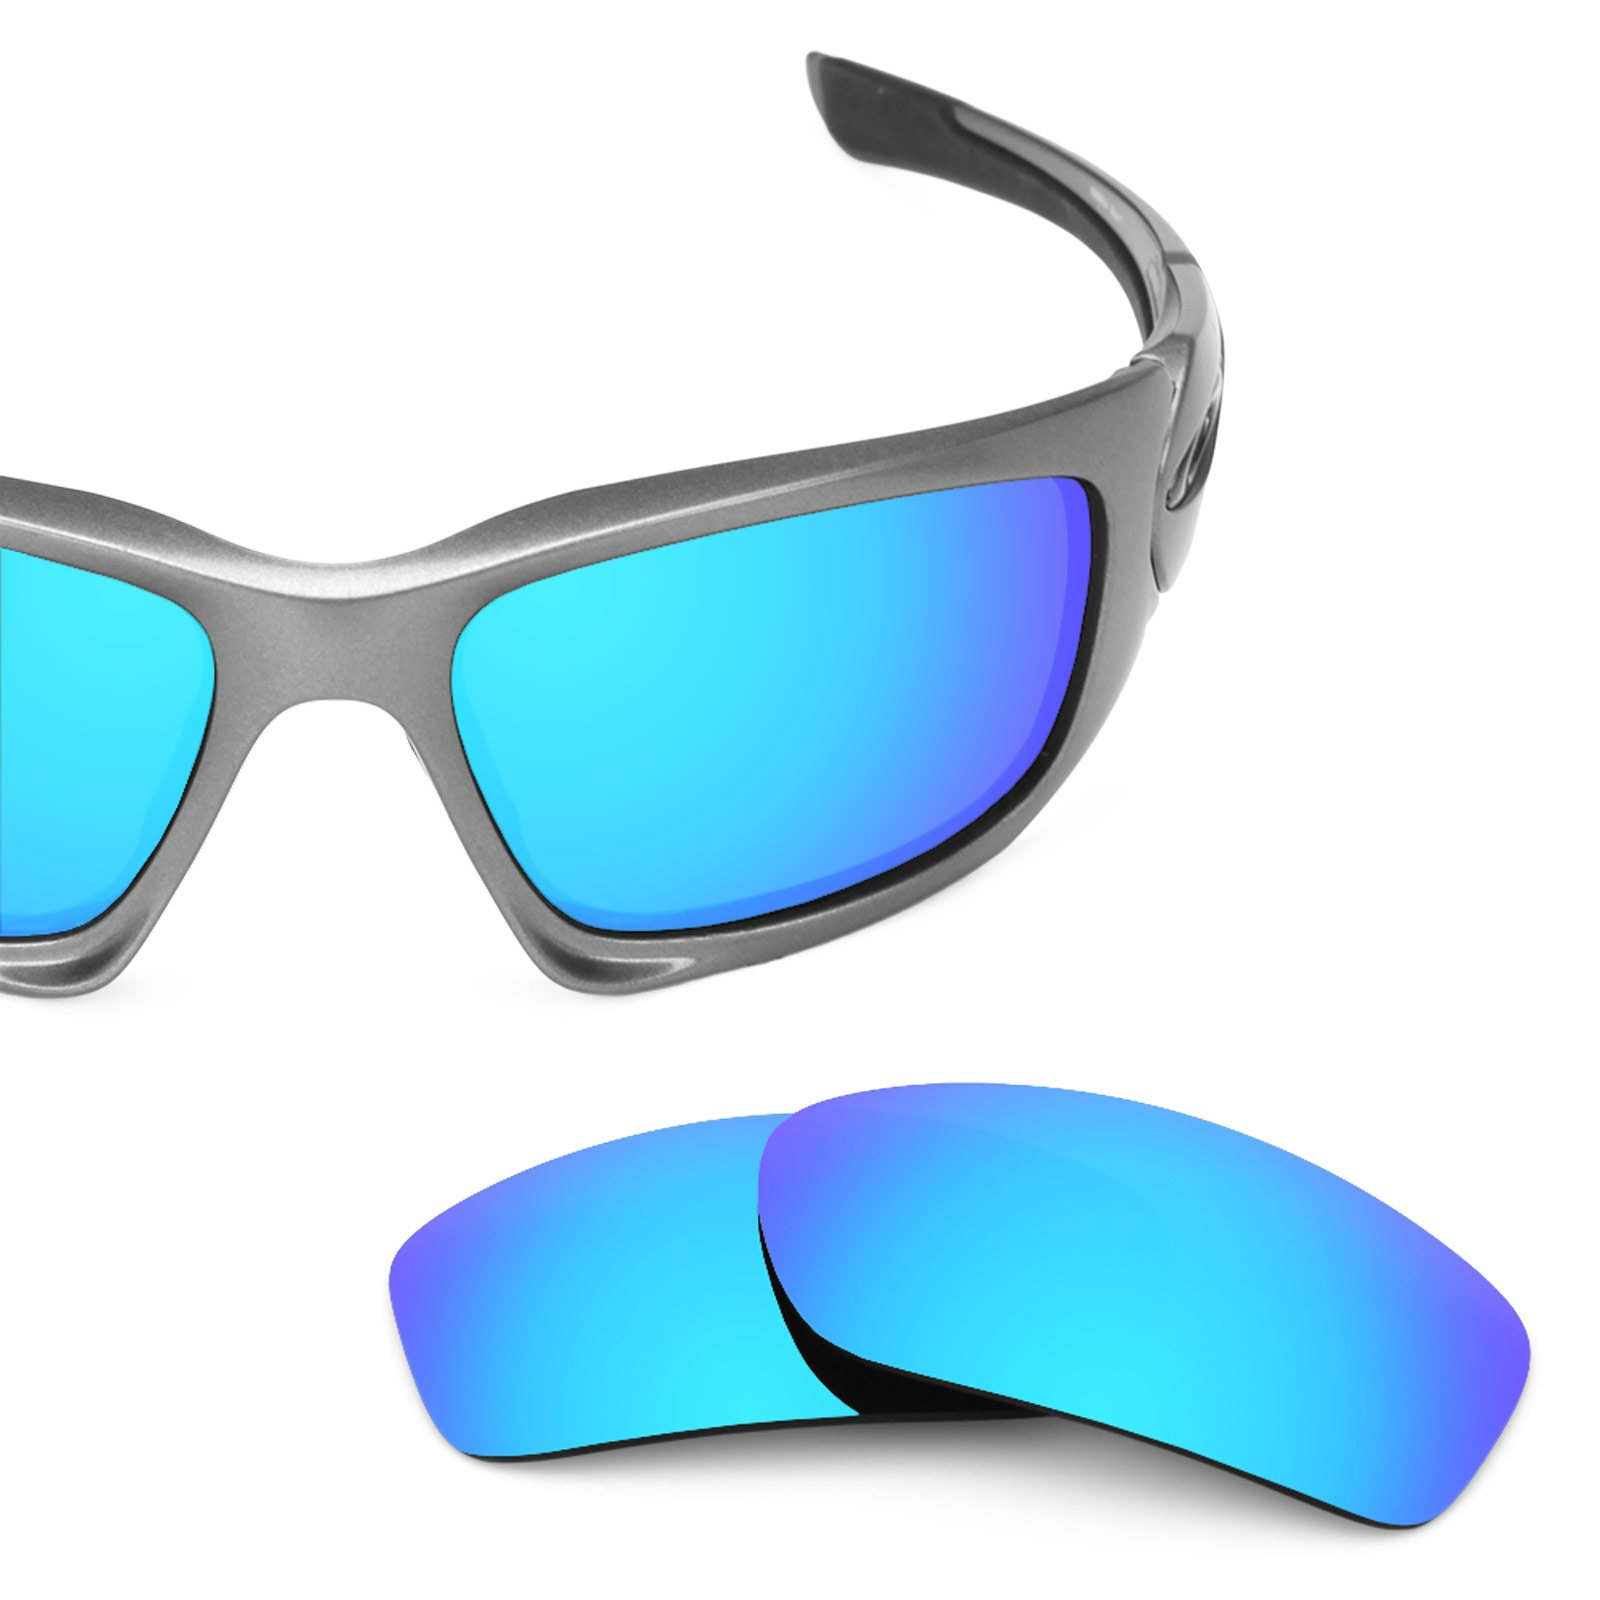 Revant Polarized Replacement Lenses for Oakley Scalpel Ice Blue MirrorShield